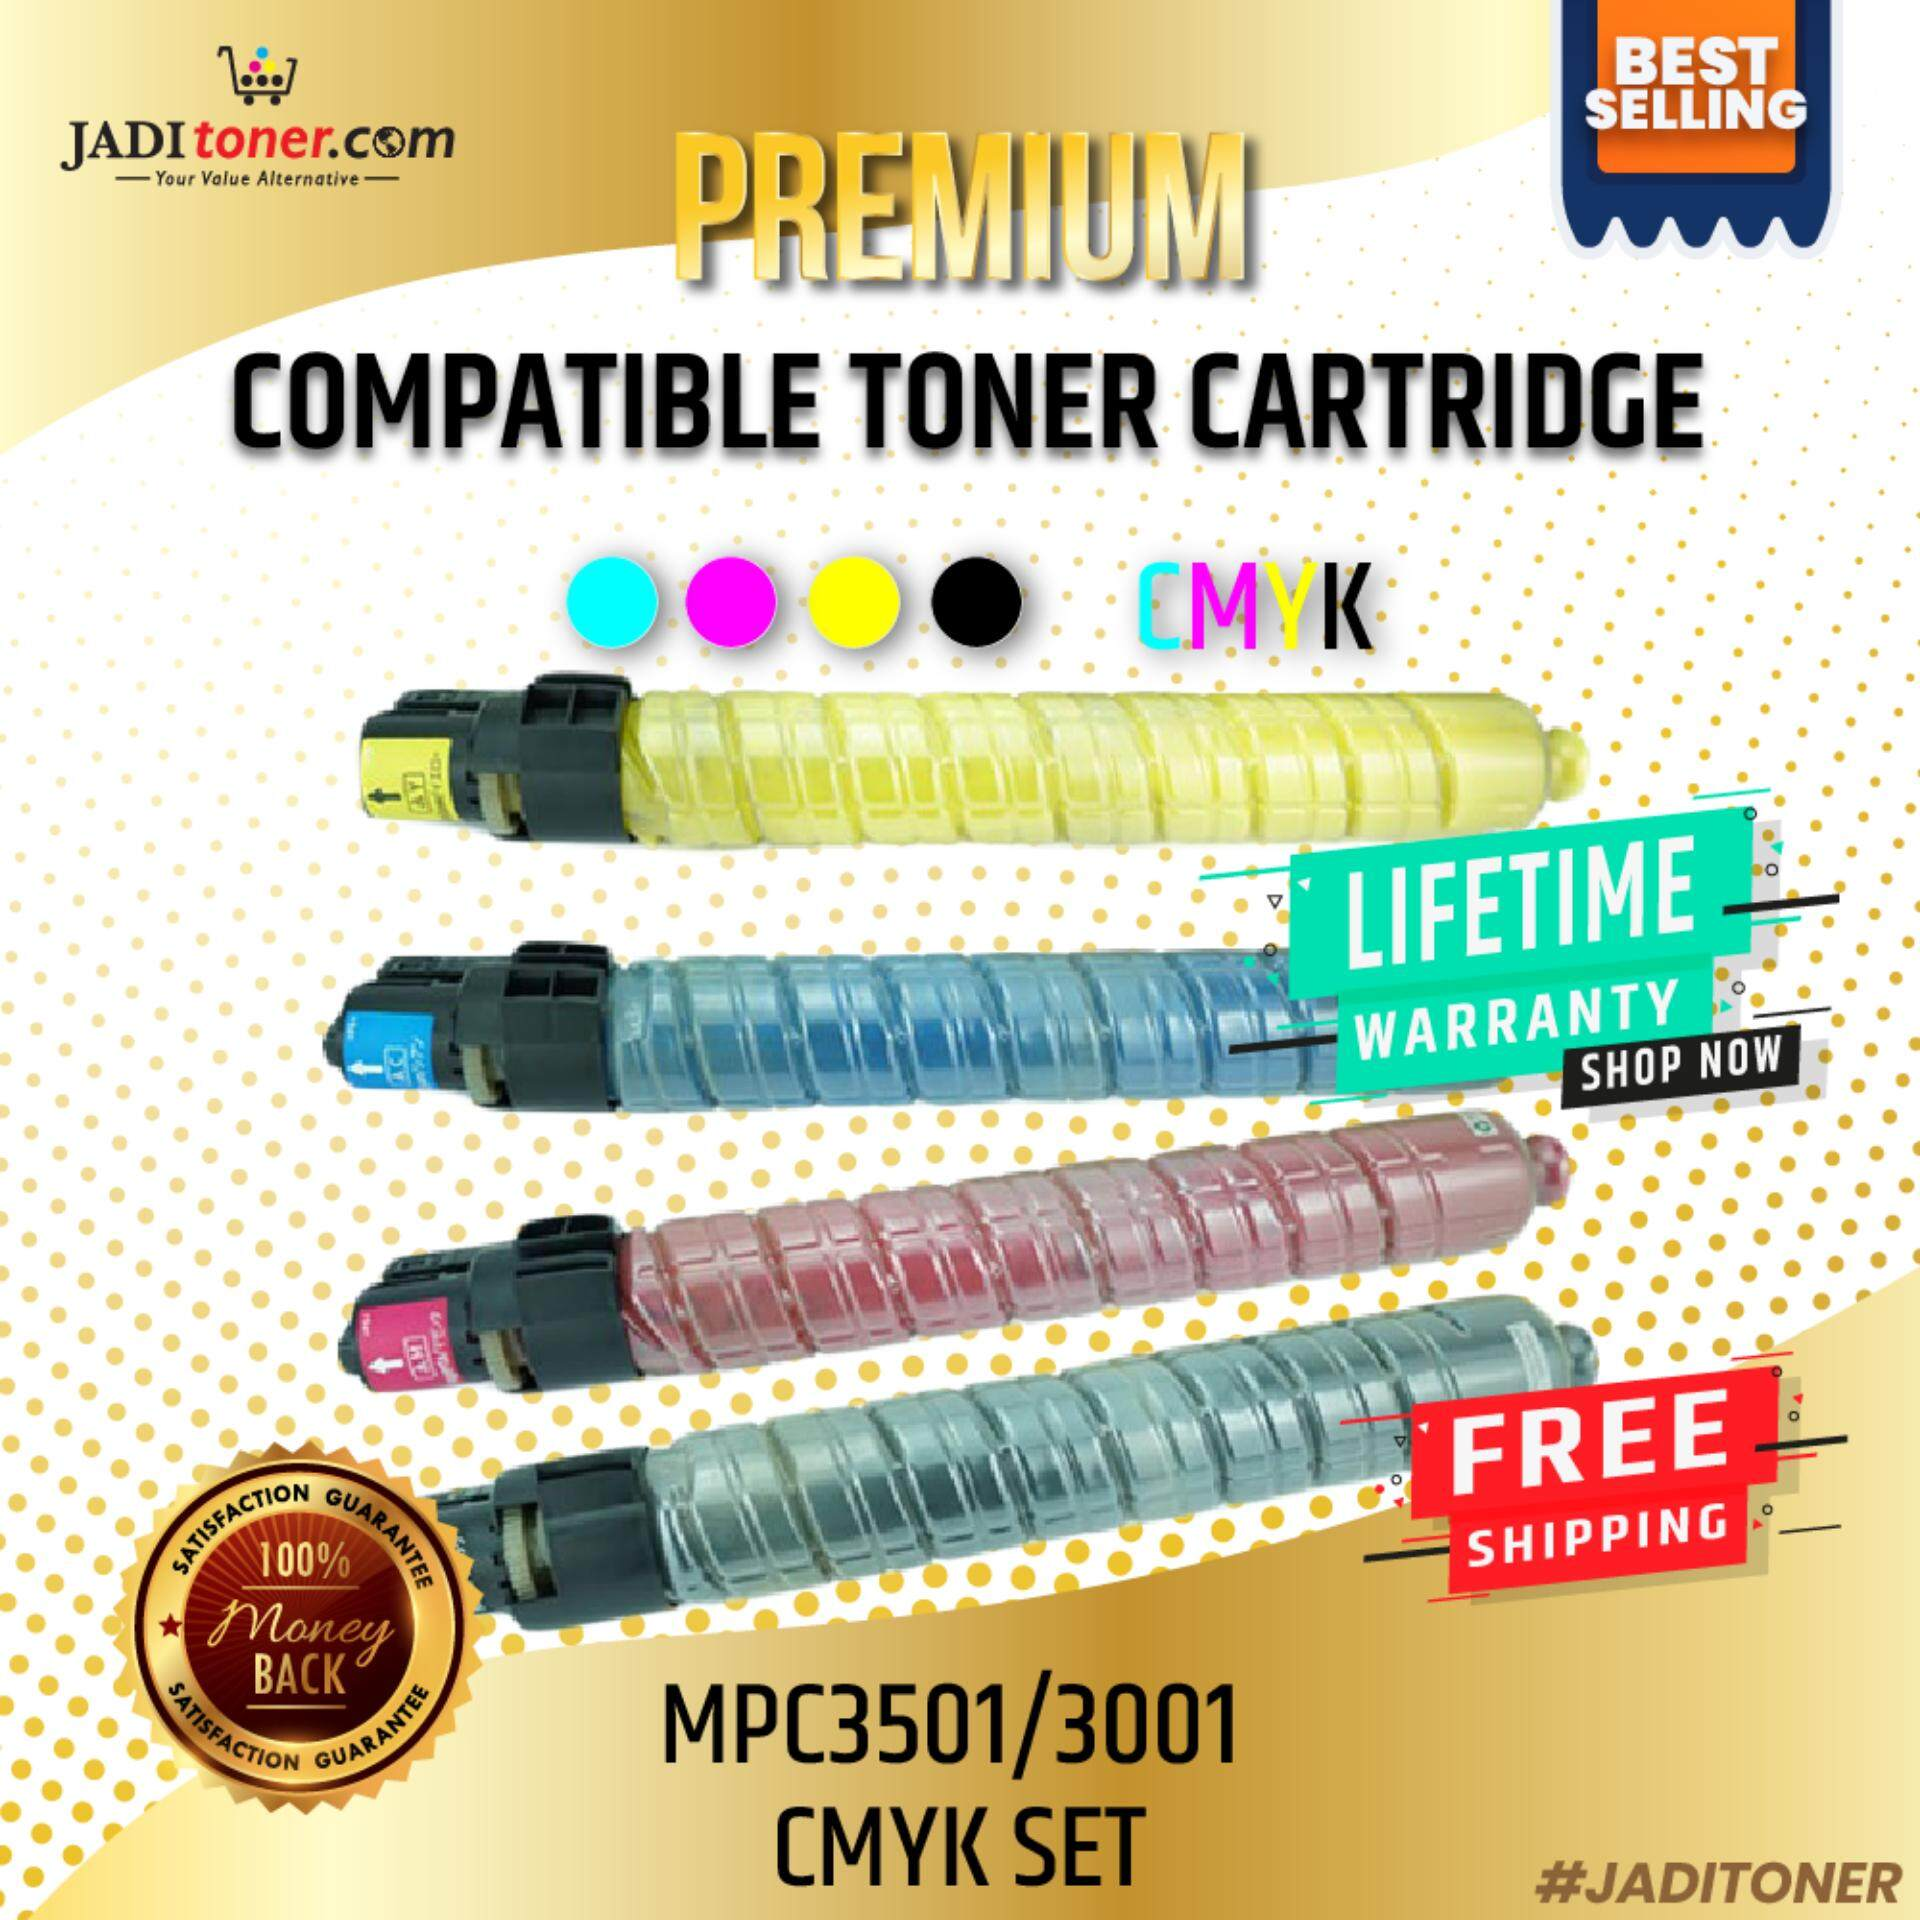 Compatible Ricoh Toner Cartridge CMYK Set (Cyan, Magenta, Yellow & Black) For Use in Ricoh MPC3501 / MPC3001 / Ricoh Aficio MP C3501 / Ricoh Aficio MP C3001